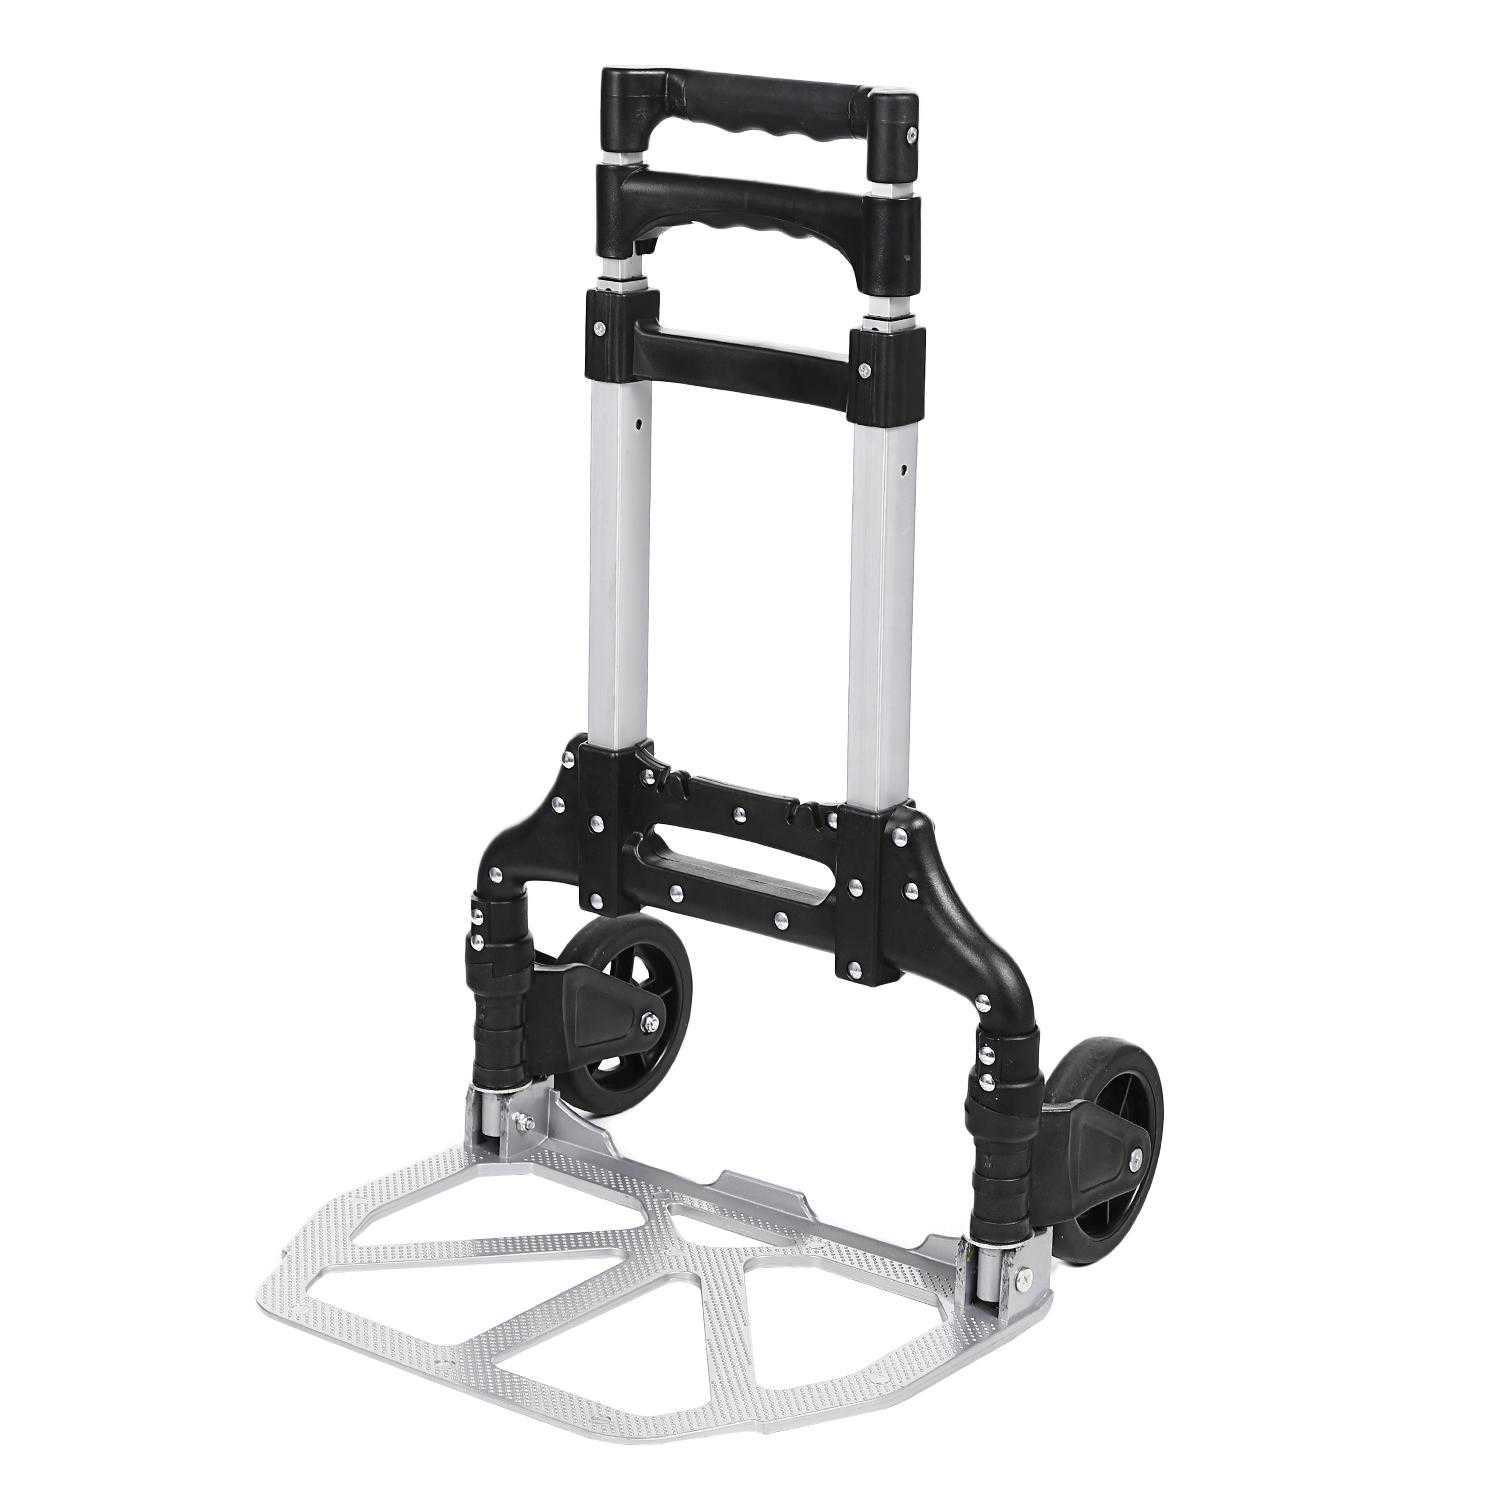 Folding Telescoping Portable 150 lbs Hand Truck Dolly Luggage Carts Aluminum Alloy ANGHE